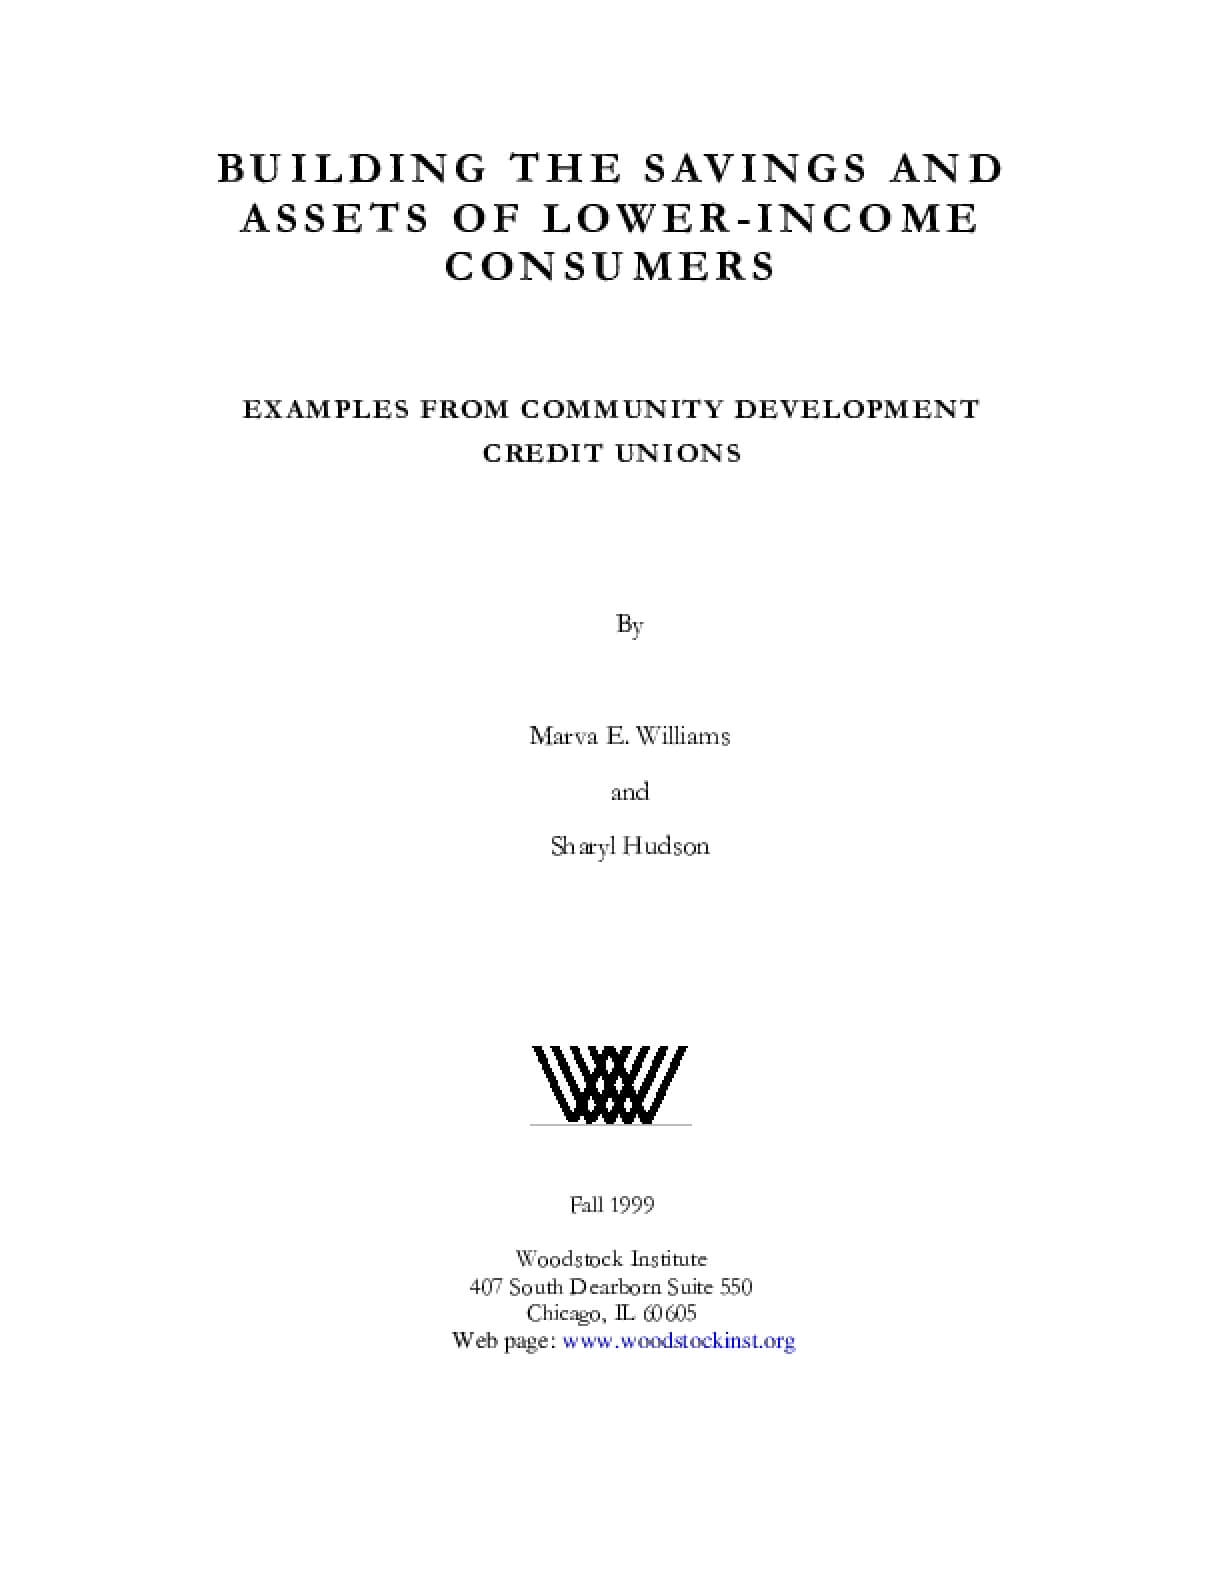 Building the Savings and Assets of Lower-Income Consumers